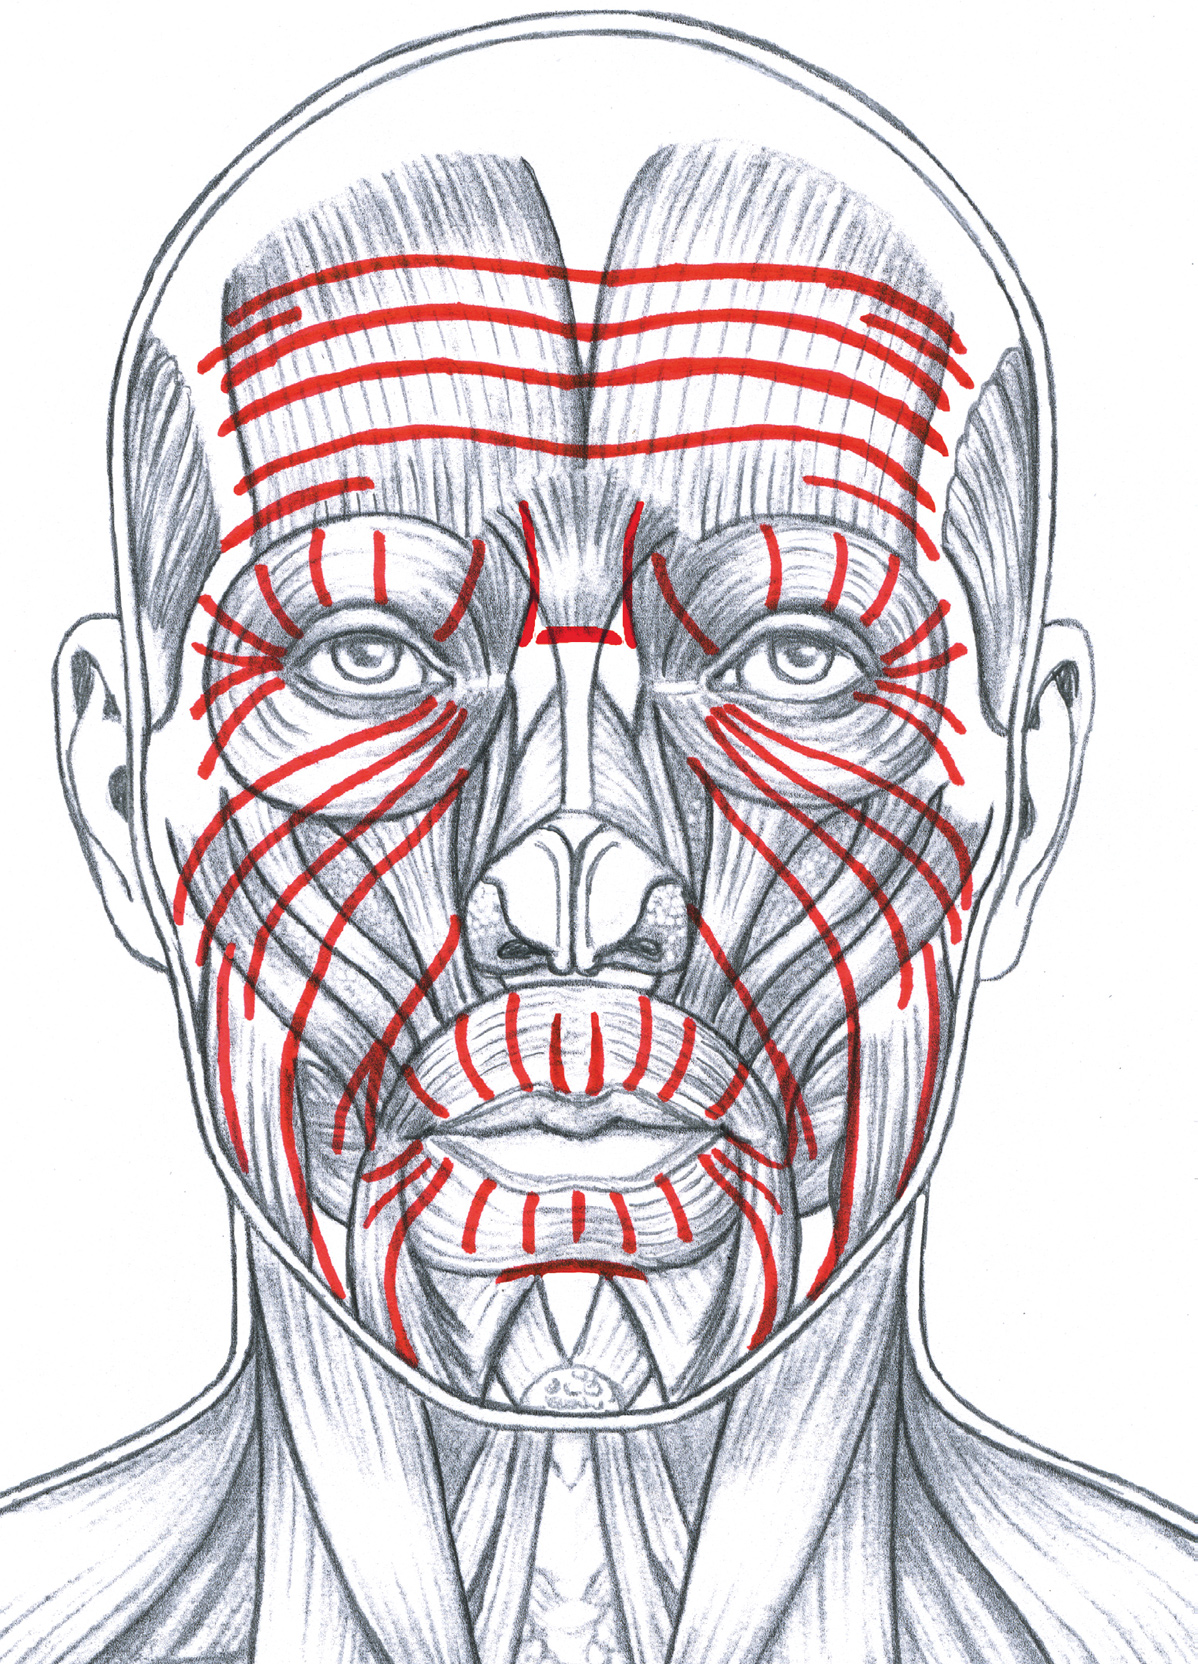 The Red Lines Indicate The General Pattern Of Facial